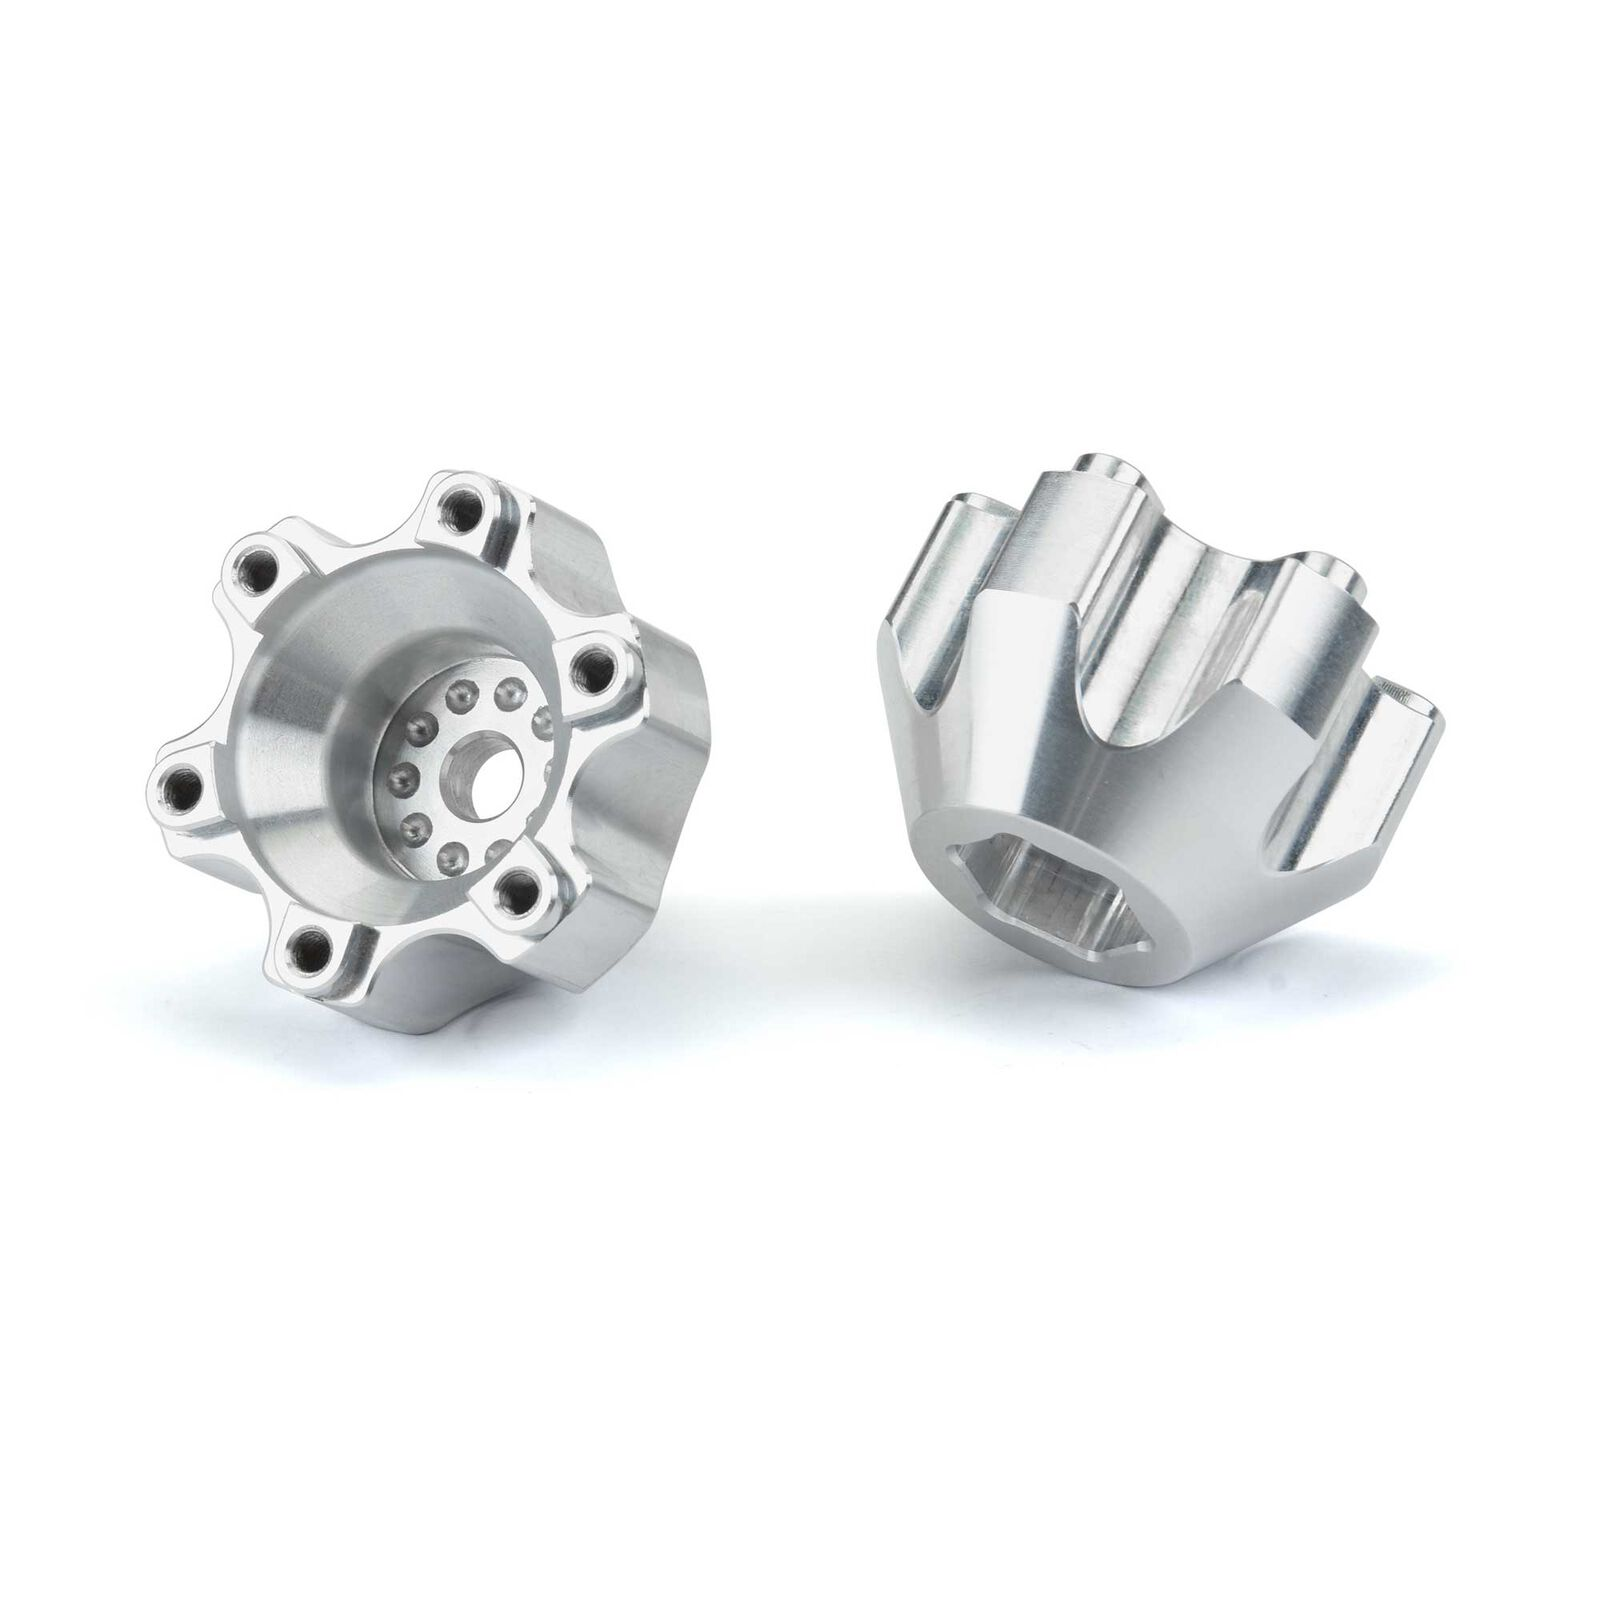 1/10 6x30 to 12mm Aluminum Hex Adapters (Wide)